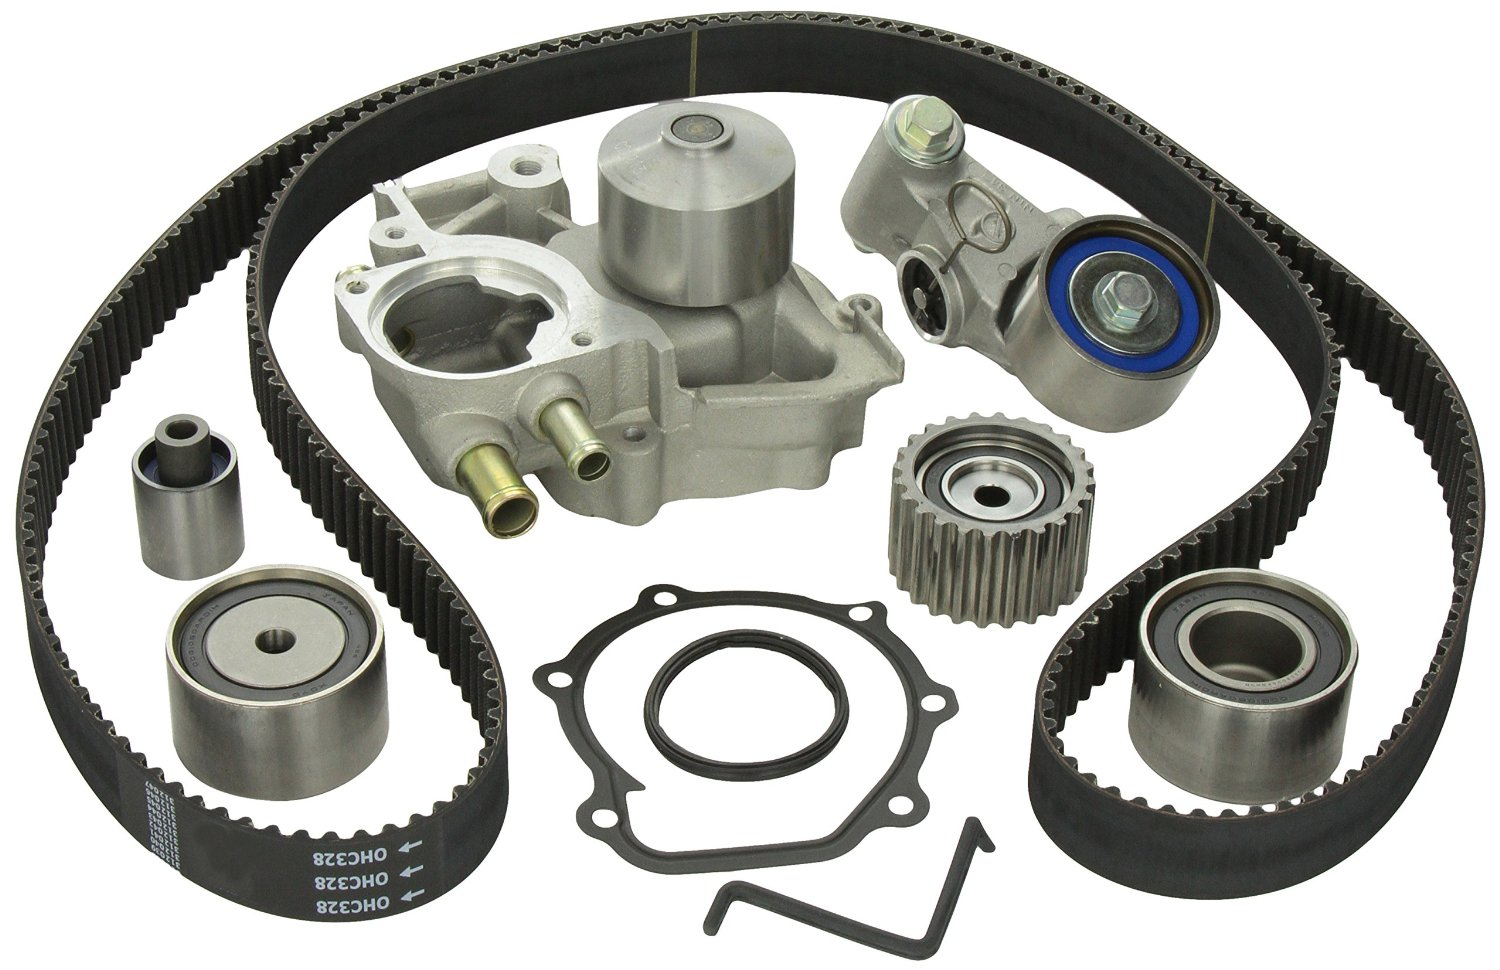 Extreme Psi Your 1 Source For In Stock Performance Parts Timing Belt Product Gates Complete Kit With Water Pump Subaru 06 07 Ej25 Wrx 04 13 Sti 23580